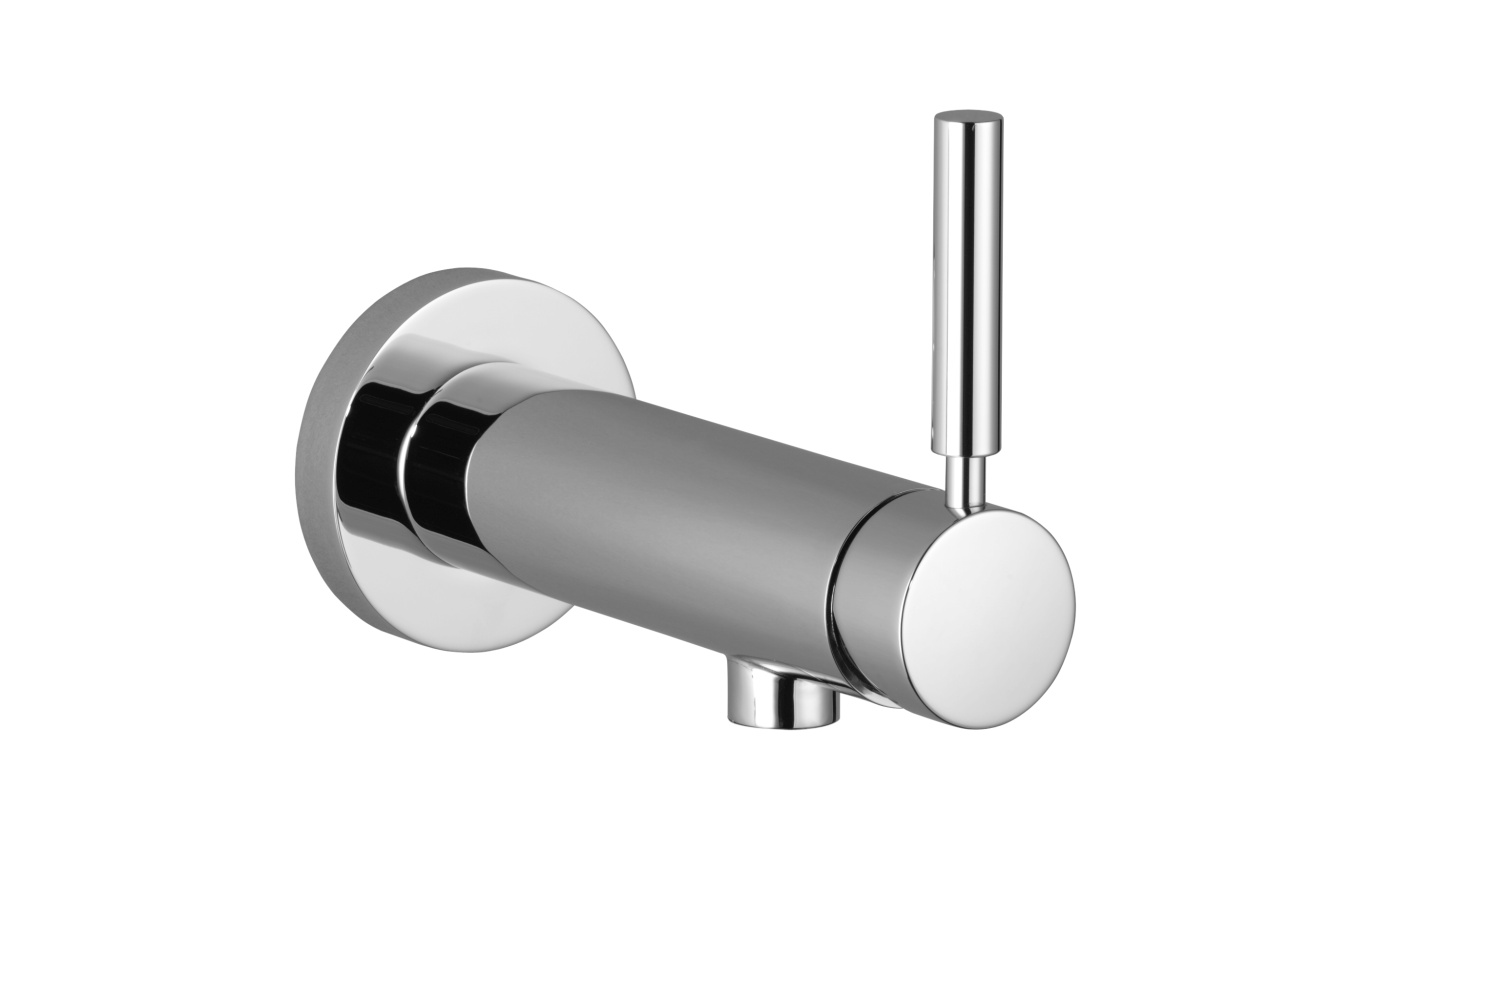 Wall-mounted single-lever mixer without drain - platinum matte